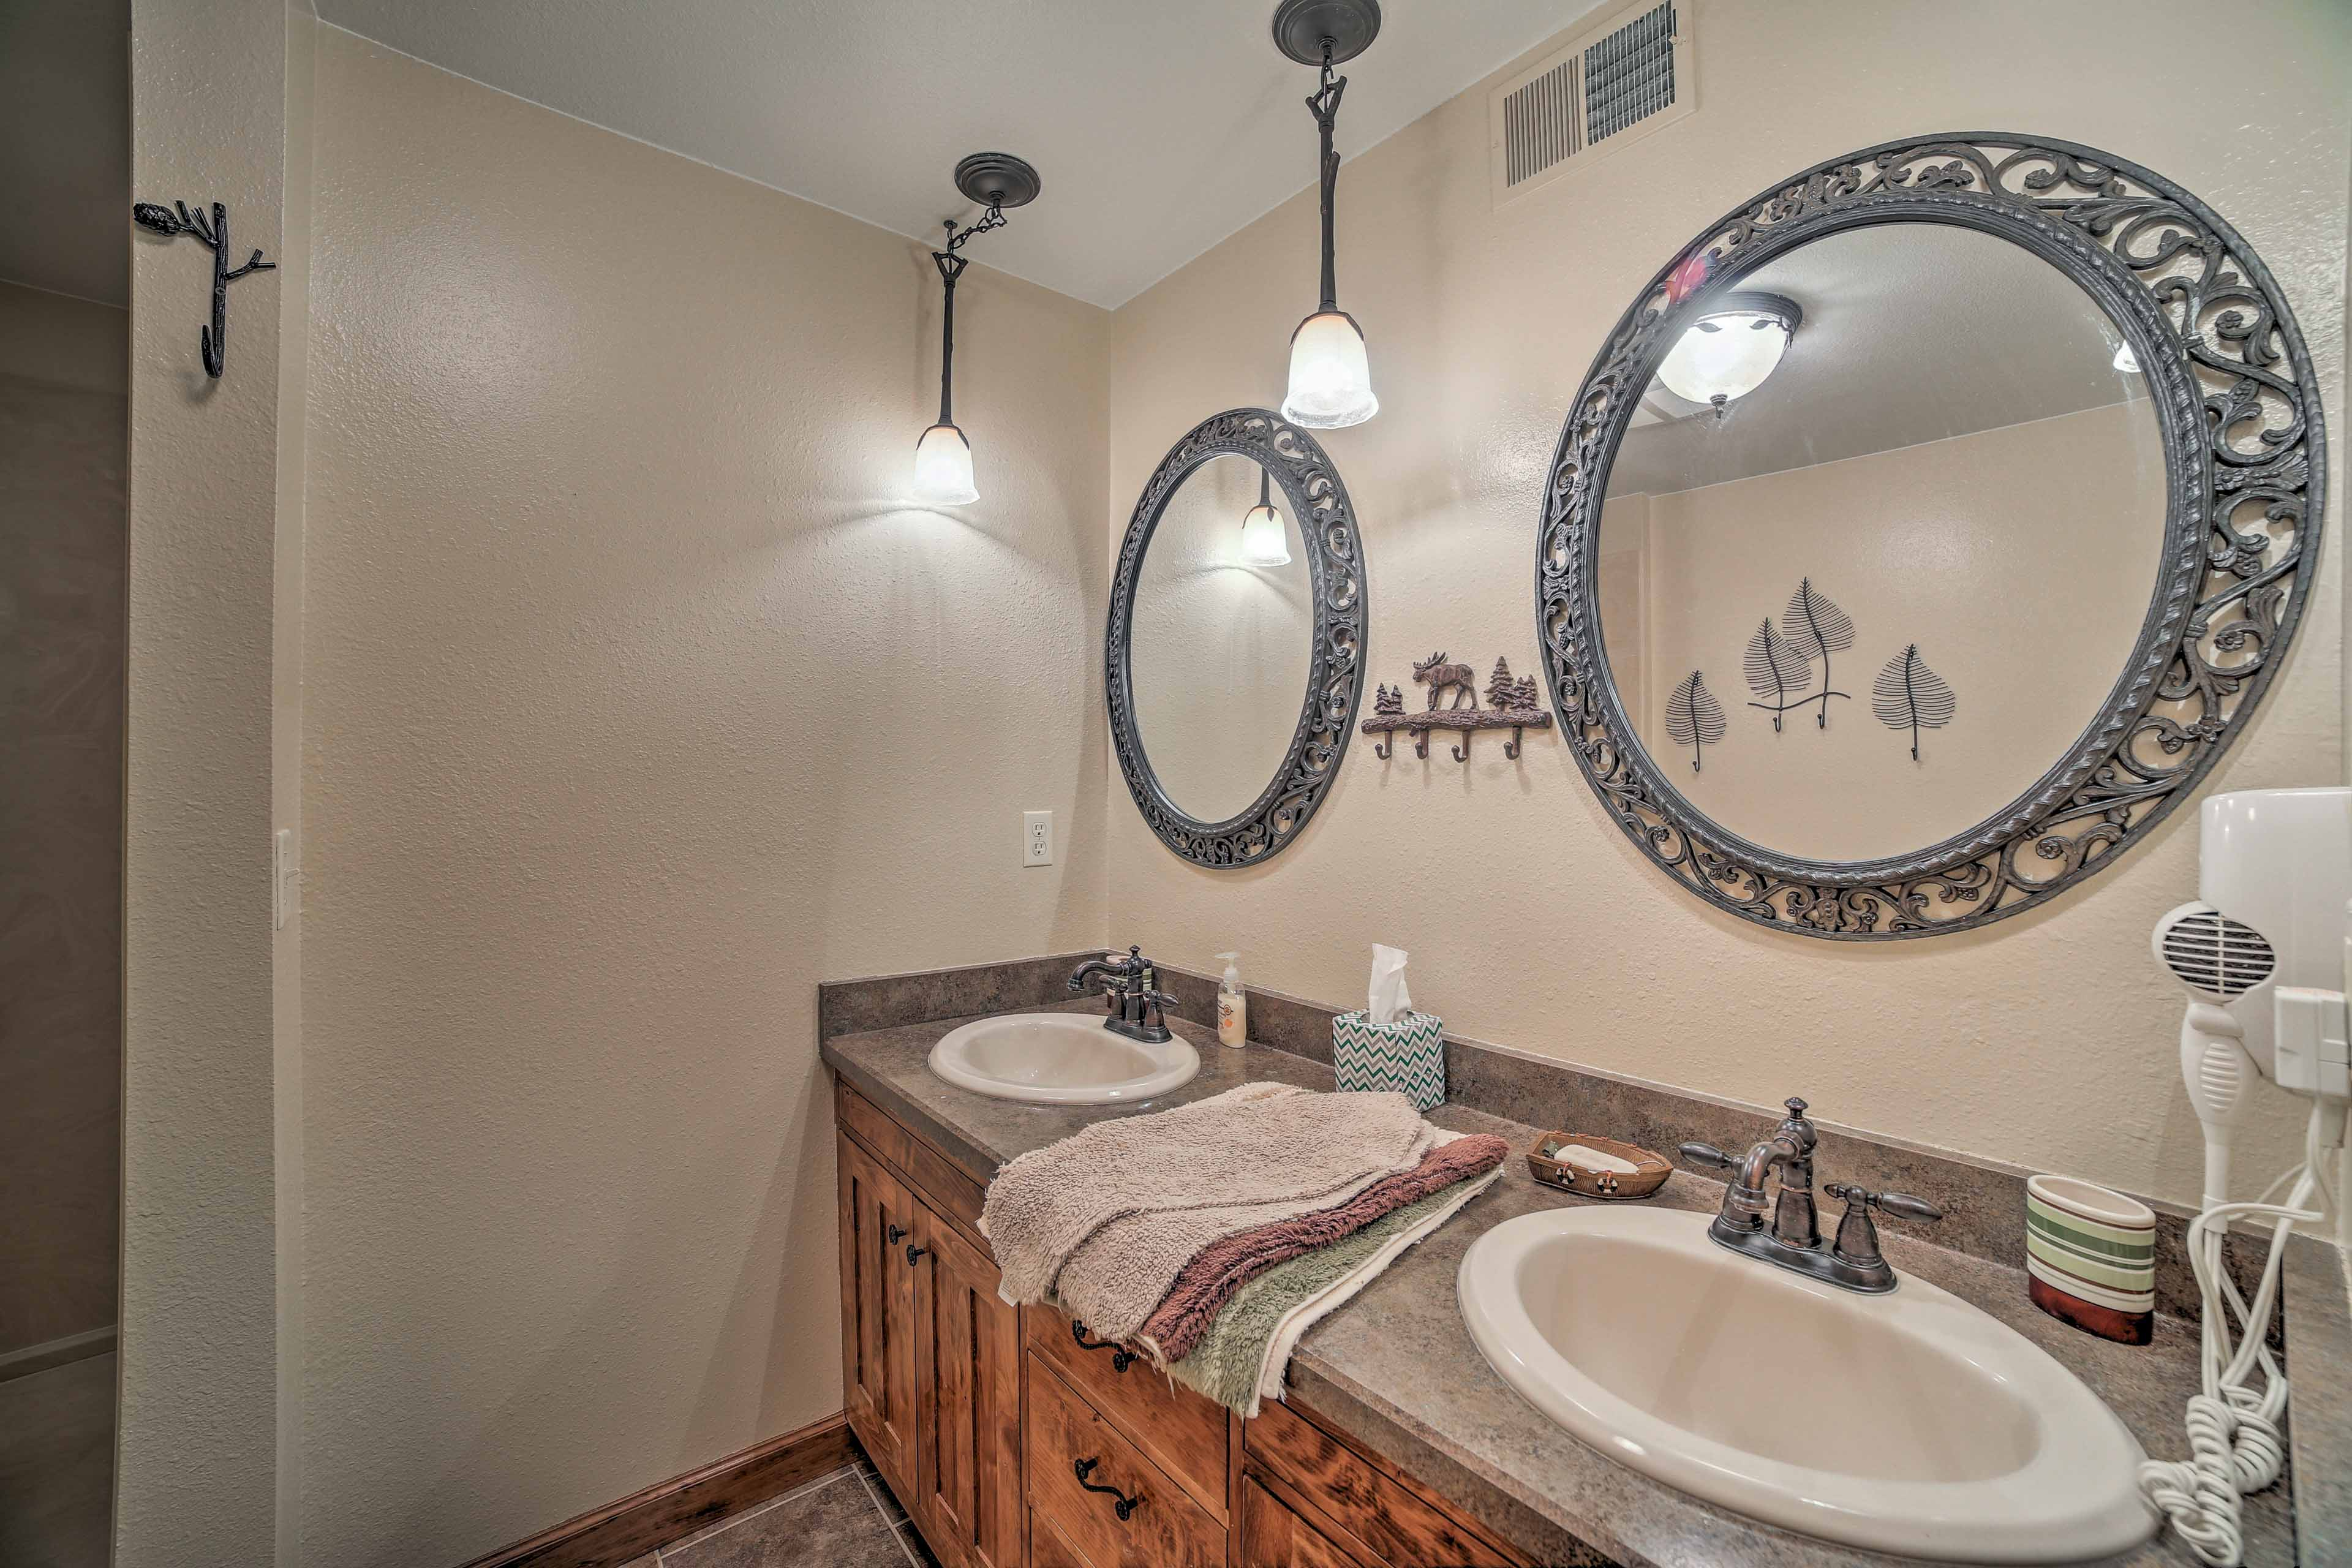 The shared bathroom has plenty of room with 2 sinks and a walk-in shower.